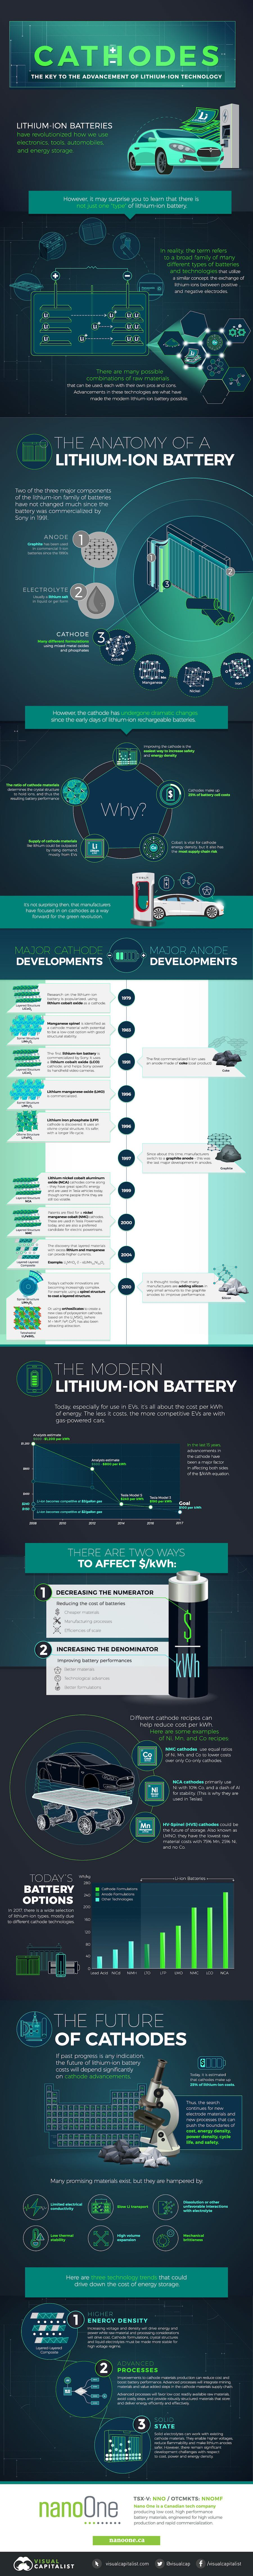 cathode-lithium-ion-battery-infographic